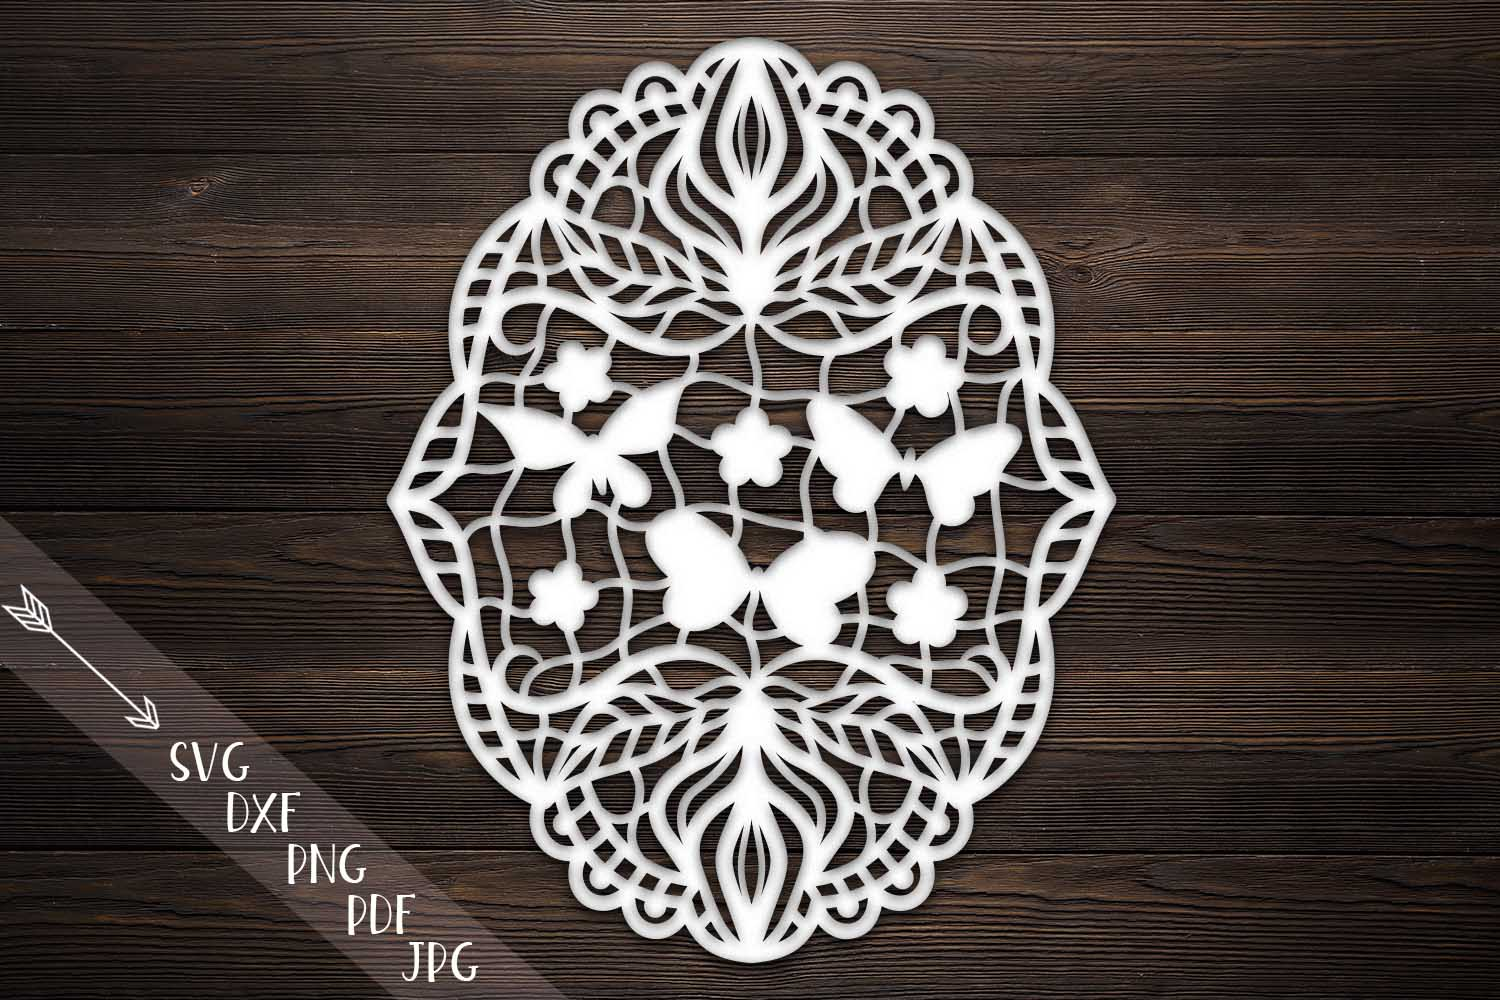 Download Free Floral Butterflies Garland Graphic By Cornelia Creative Fabrica for Cricut Explore, Silhouette and other cutting machines.